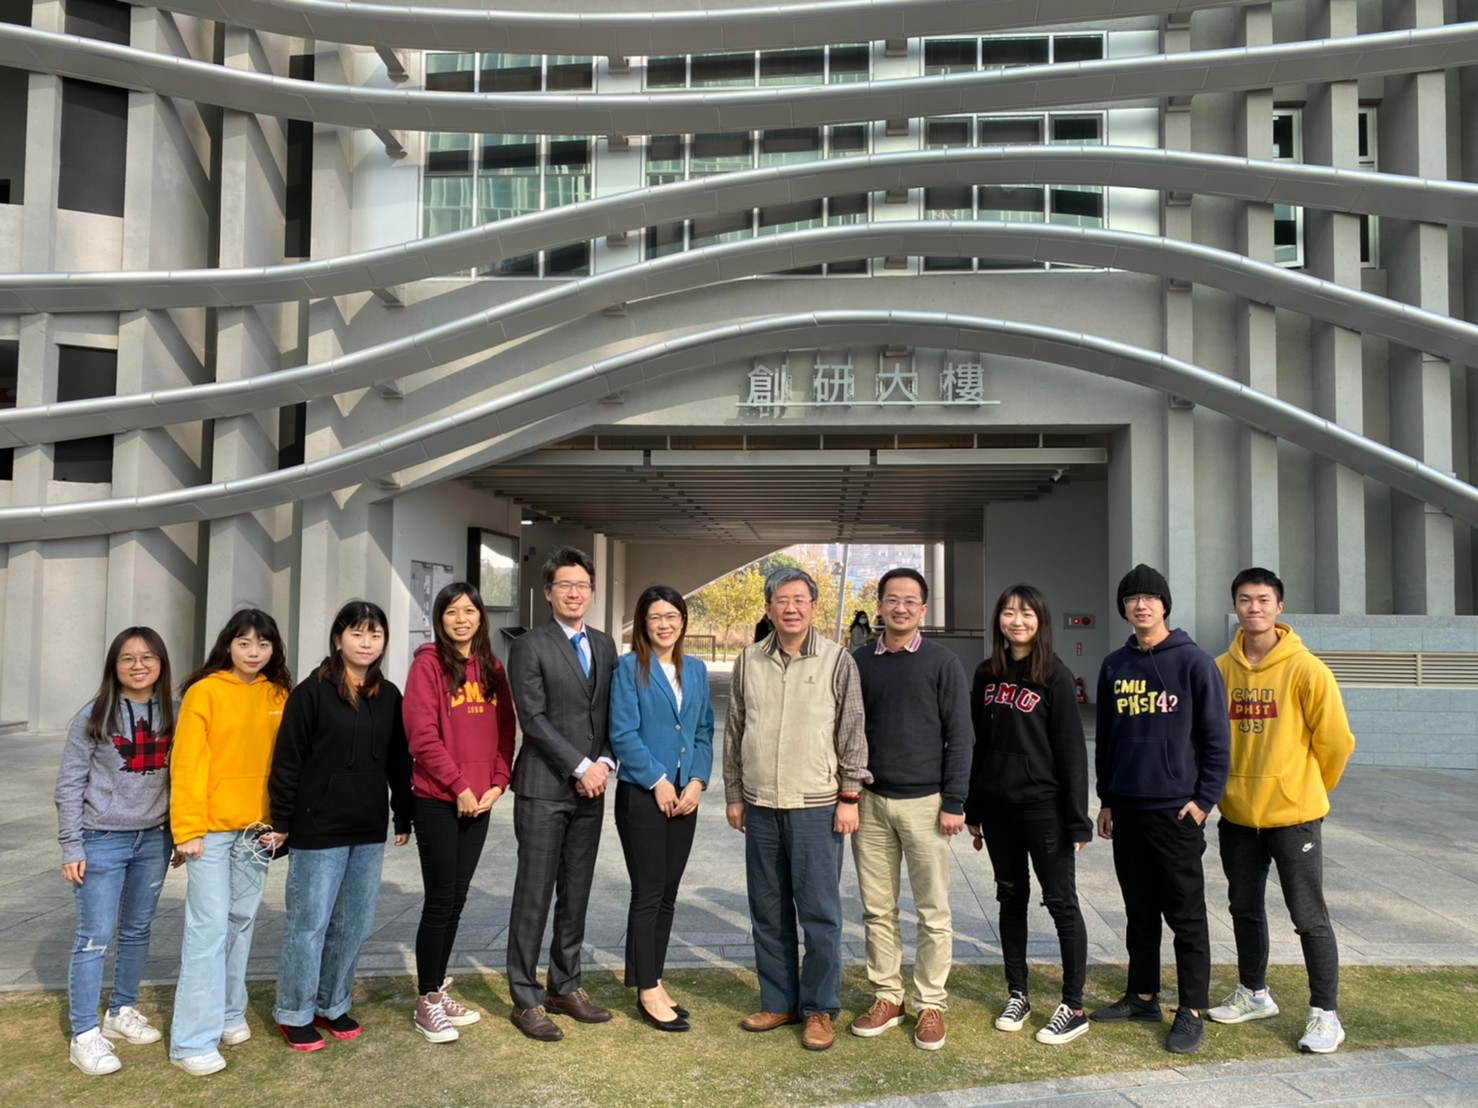 Professor Bing-Fang Hwang (5th from the right) and the research members of CMU College of Public Health